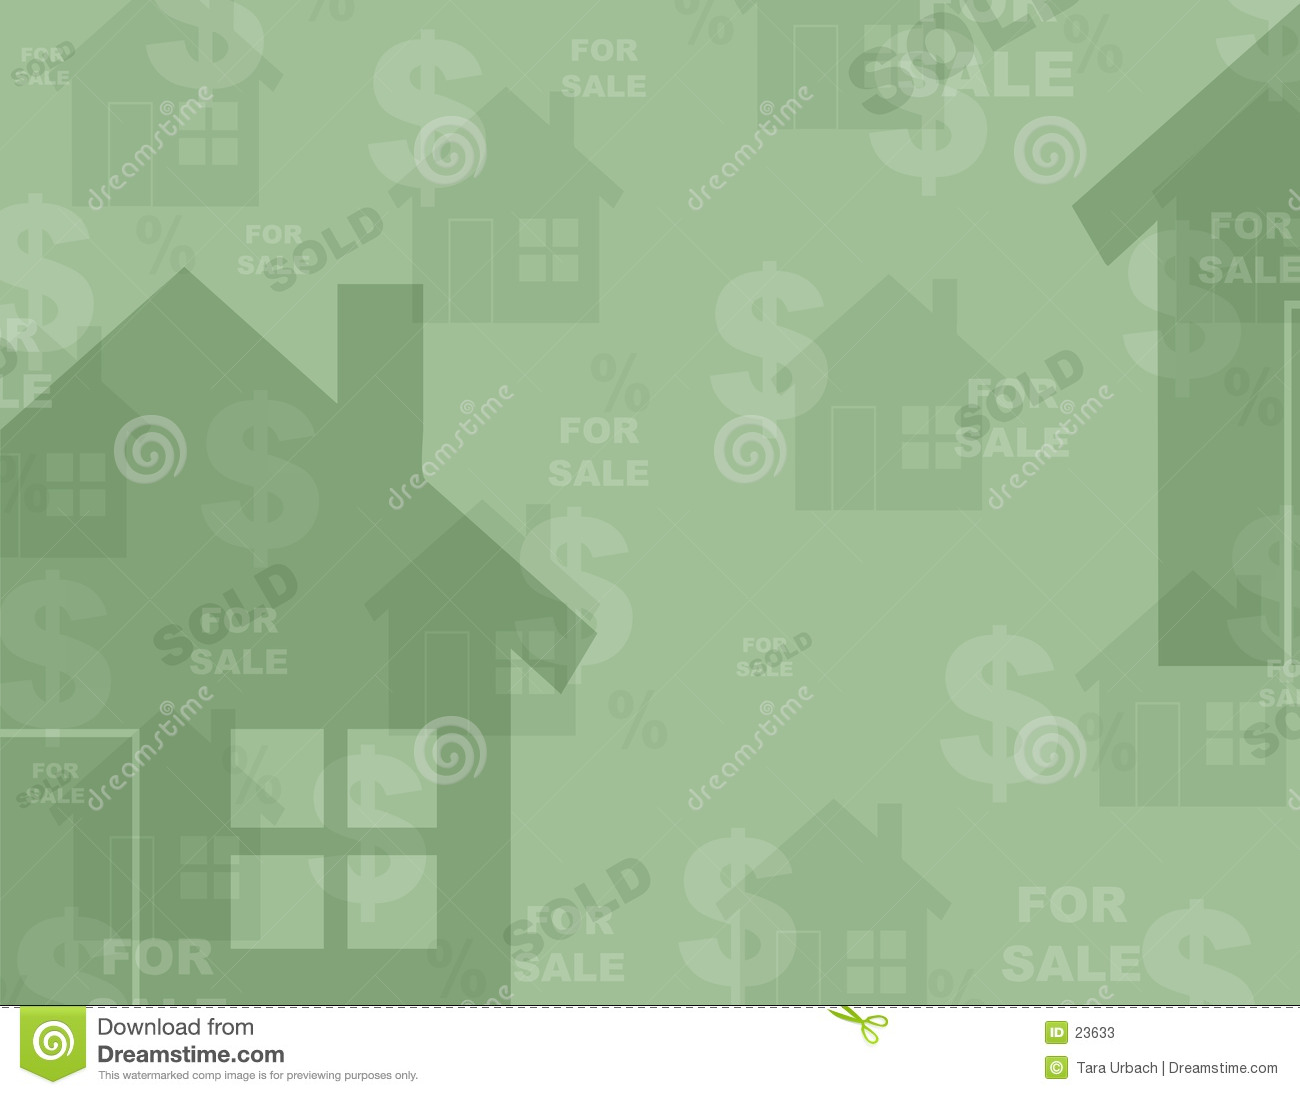 Multil layered real estate themed background houses dollar signs